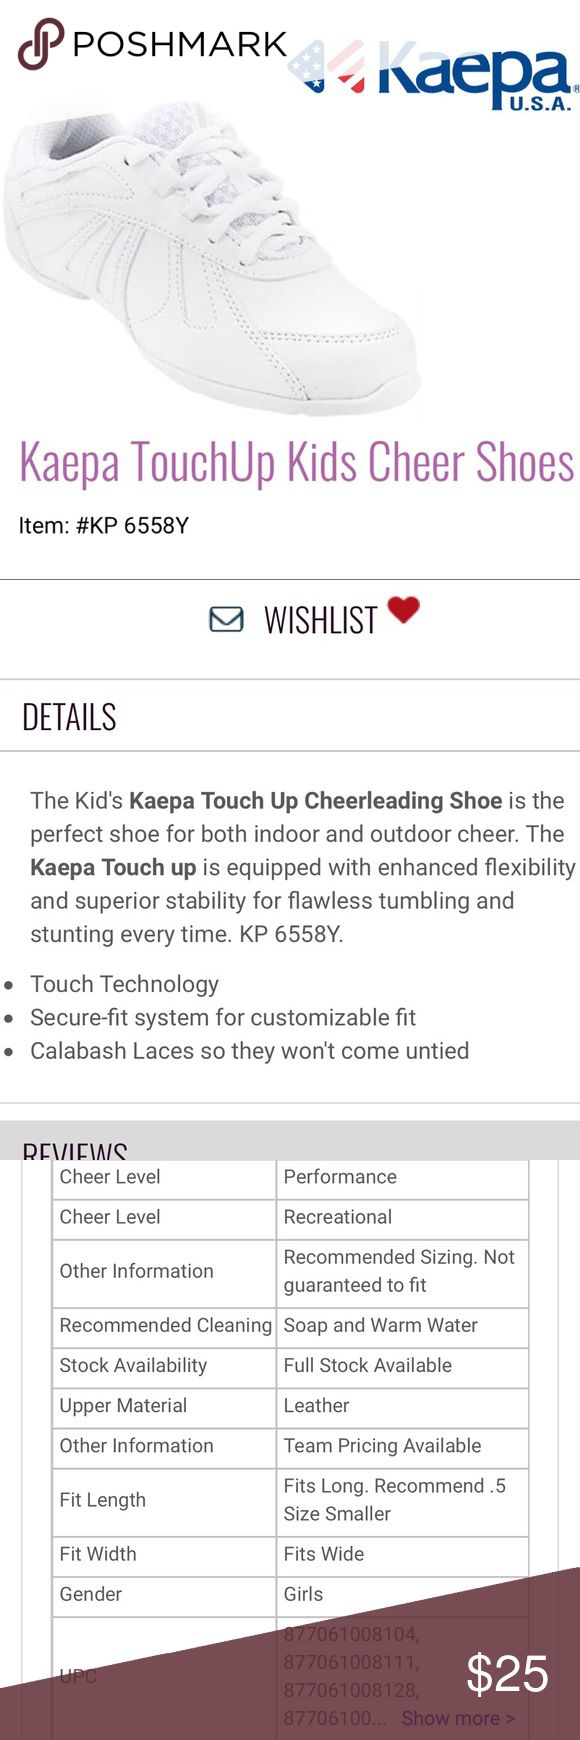 EUC Kaepa Touch Up White Cheer Shoes Youth Size 1 ThIs pair of Kaepa brand Touch Up White, low top Cheer Shoes in Youth Size 1 comes in excellent used condition.  All specifications are listed in the images. Kaepa Shoes Sneakers